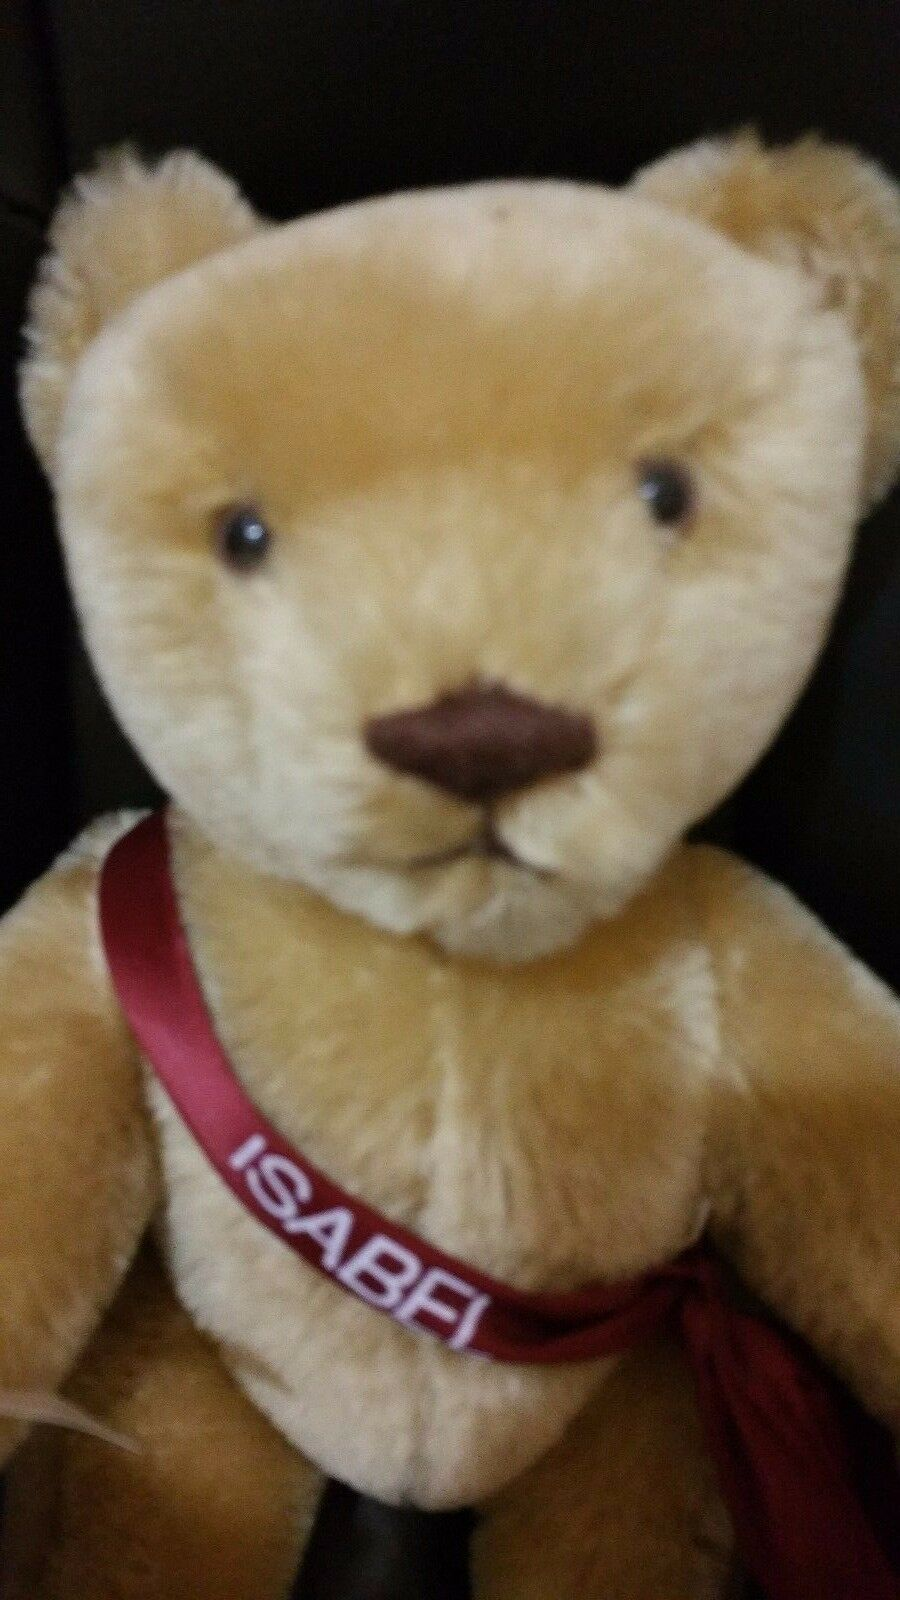 12  Bear LMT 51 2500  Isabel by John Axe Merrythought  Made england